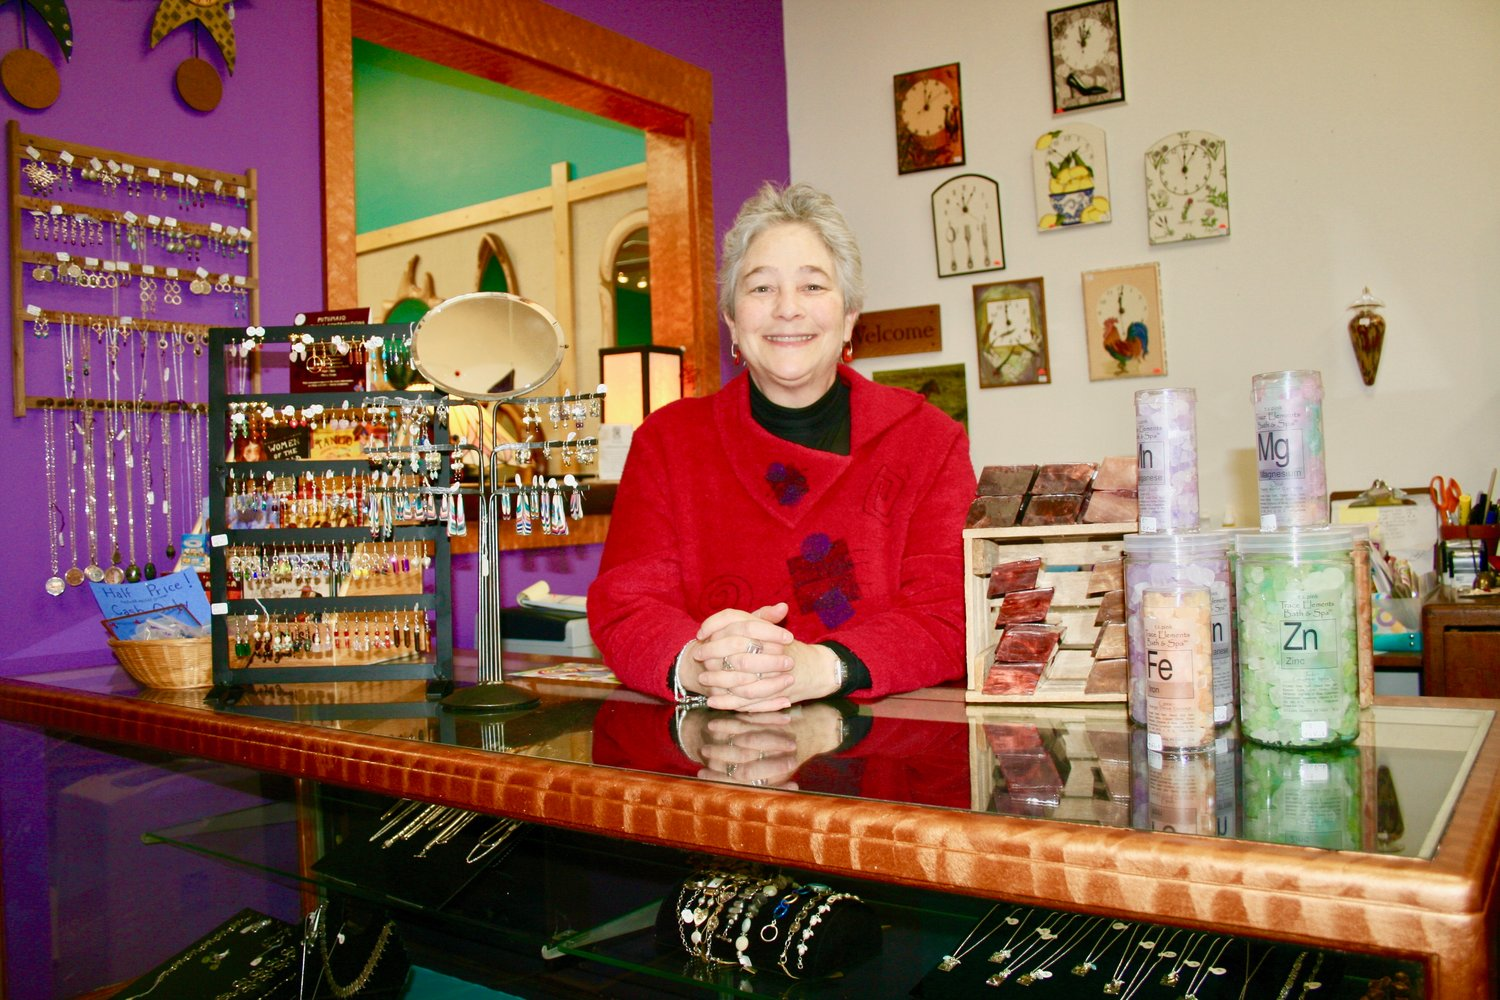 After 14 years as owner, Elayne Aion has sold The Dovetail Artisans, a charming gift shop at 105 E. Glenside Ave, in Glenside. The new owner, Rhiannon Cragle Punzo, is expected to take over shortly after the new year.